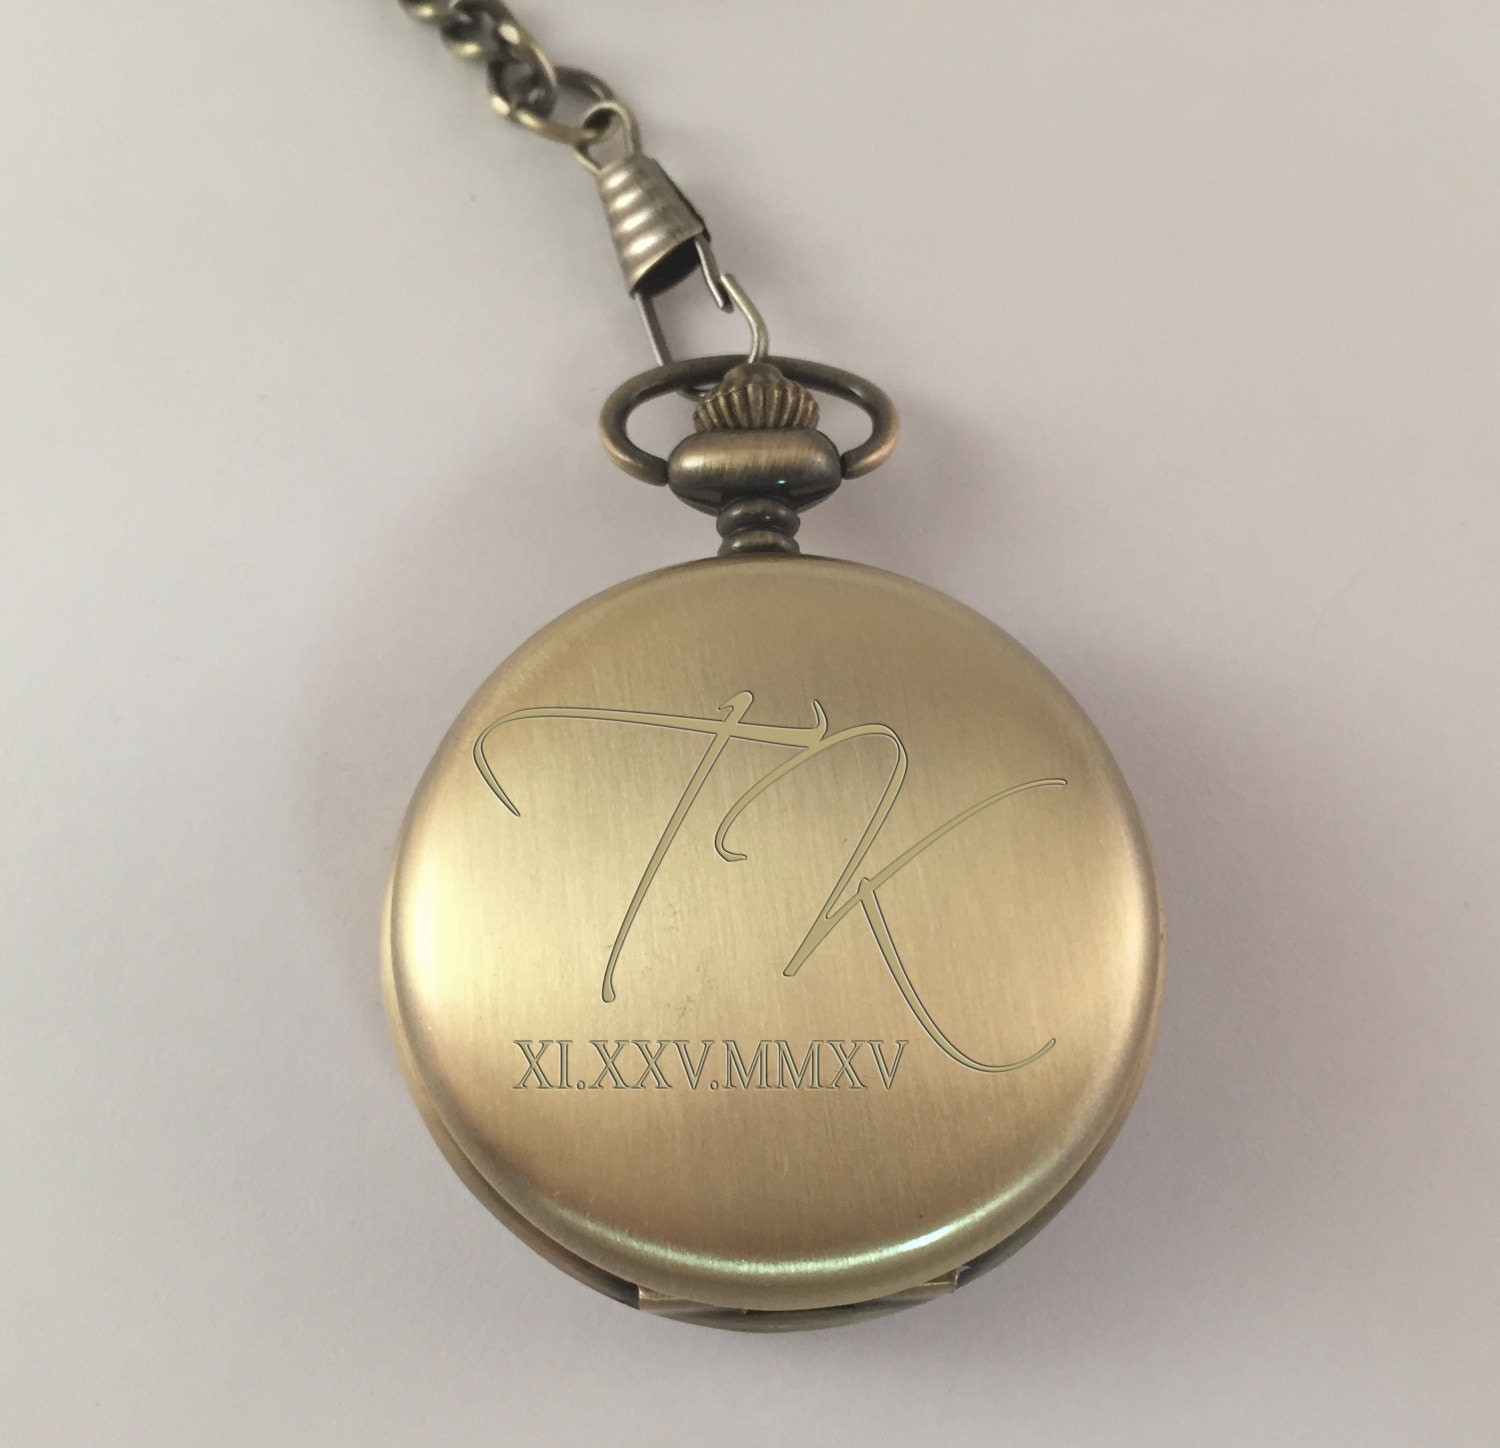 personalized pocket engraved for free by